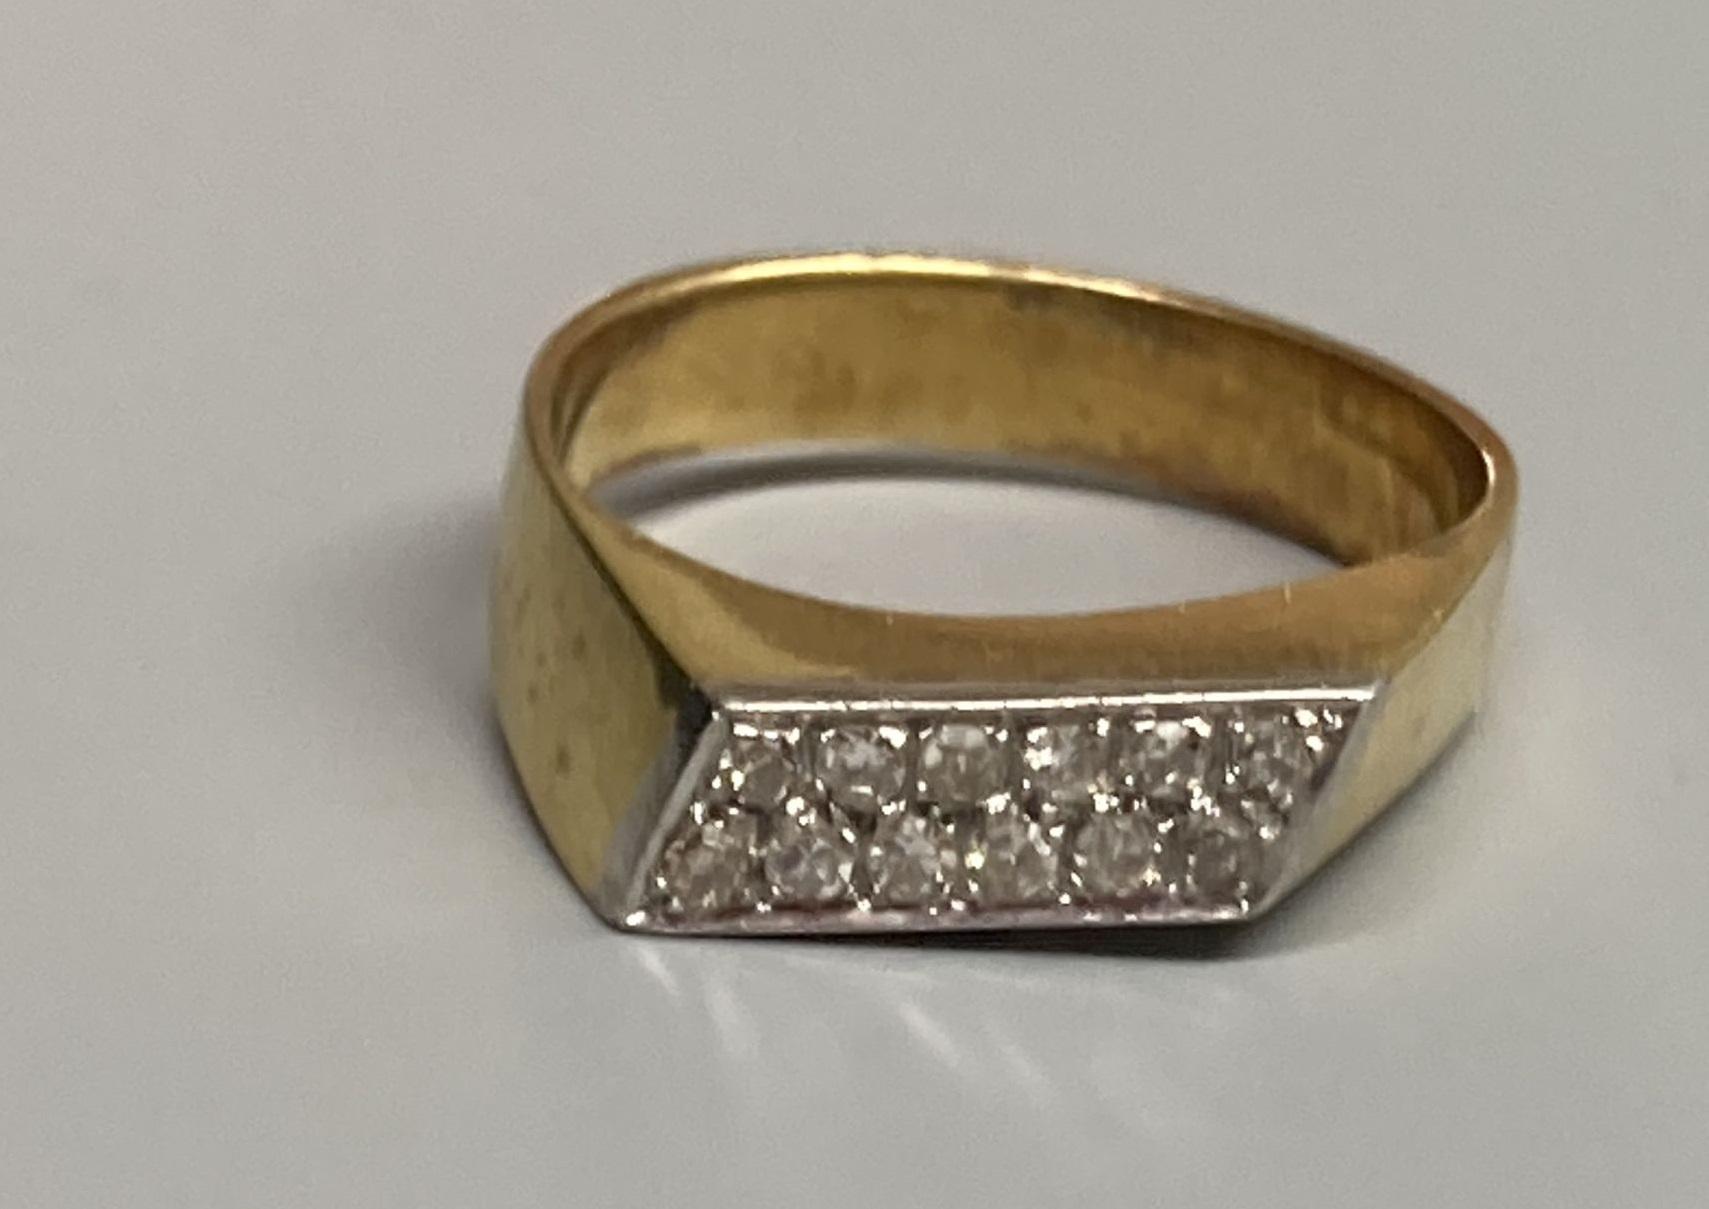 A modern 18k yellow metal and pave set two row diamond ring, size L/M, gross 4.8 grams.